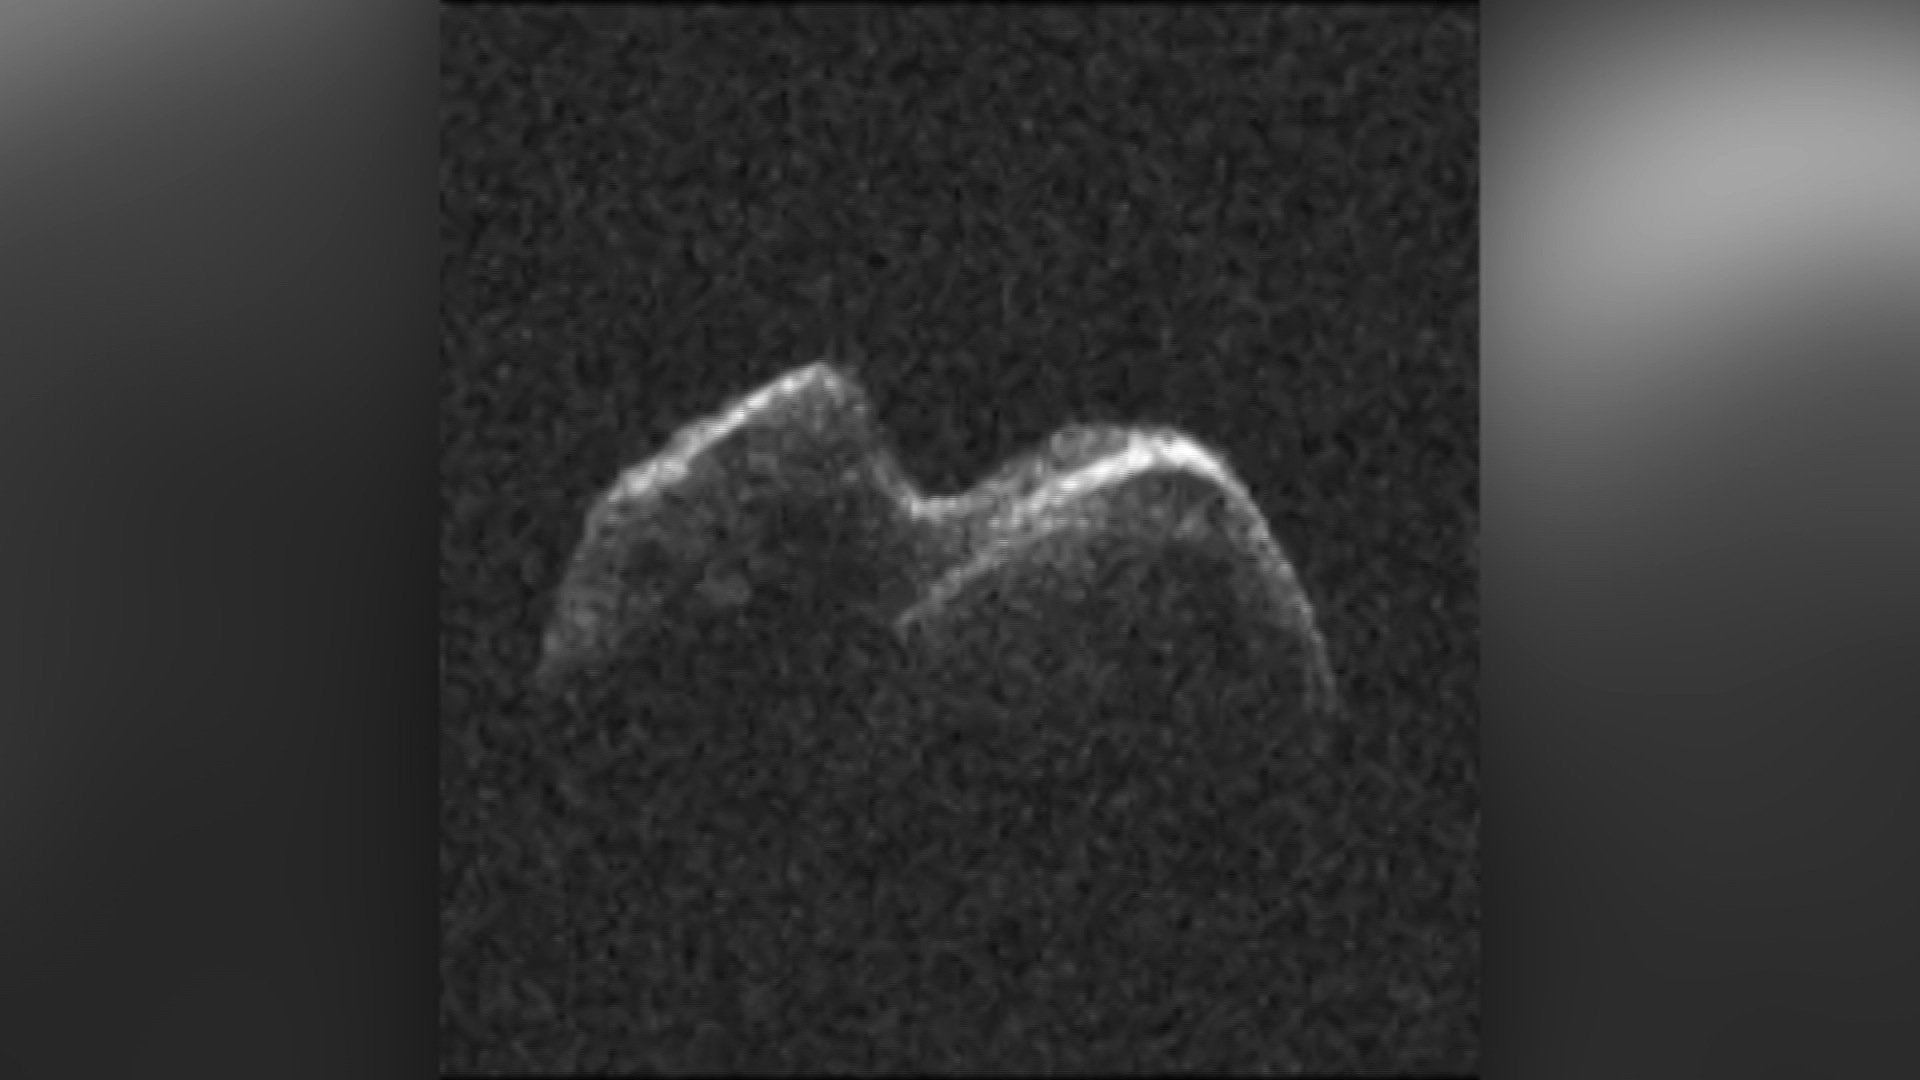 What to do if an asteroid comes our way